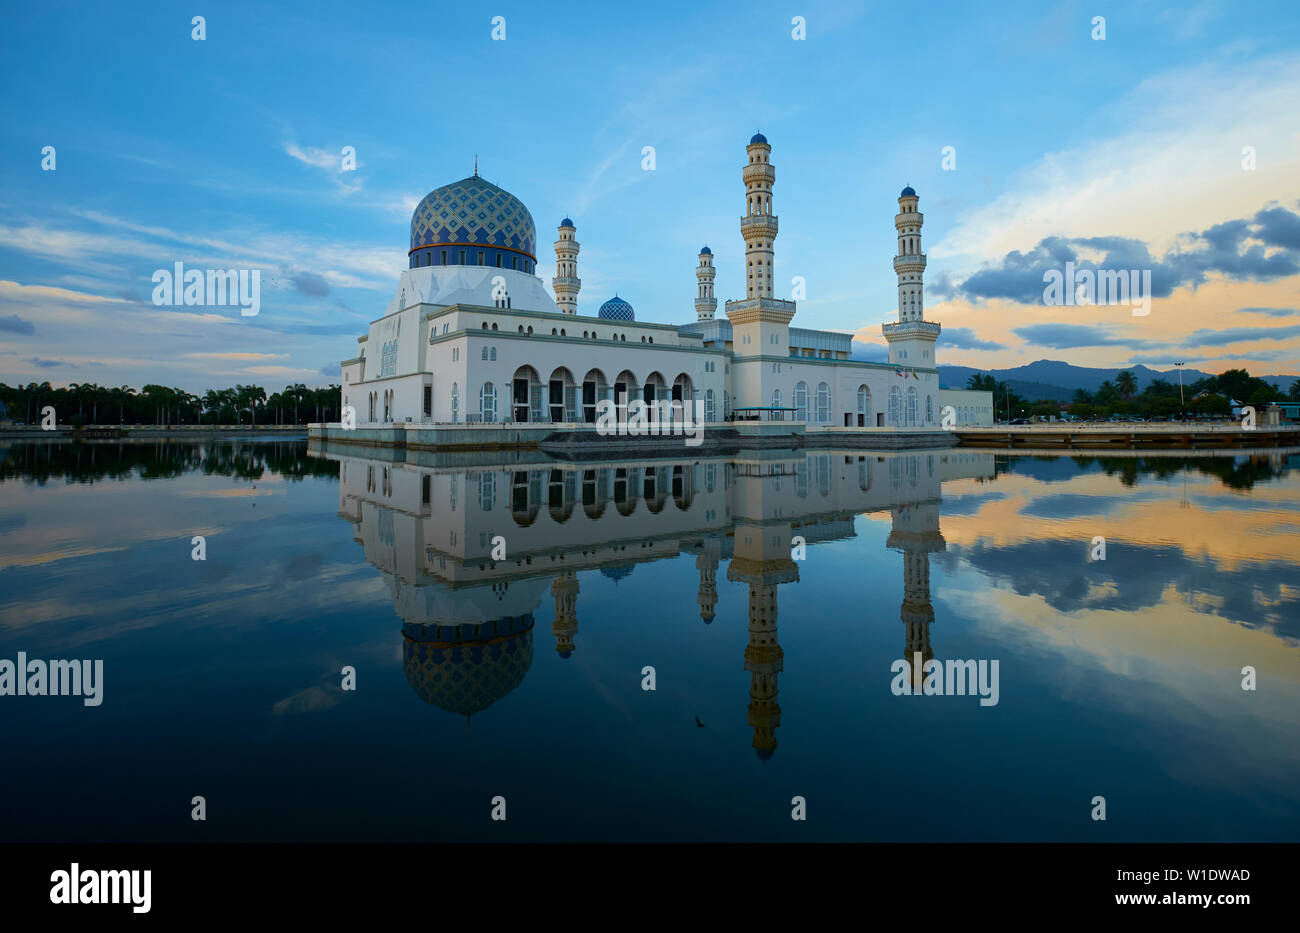 The Moorish style main city Mosque, Masjid Bandaraya, reflected at sunset in Kota Kinabalu, Borneo, Malaysia. - Stock Image